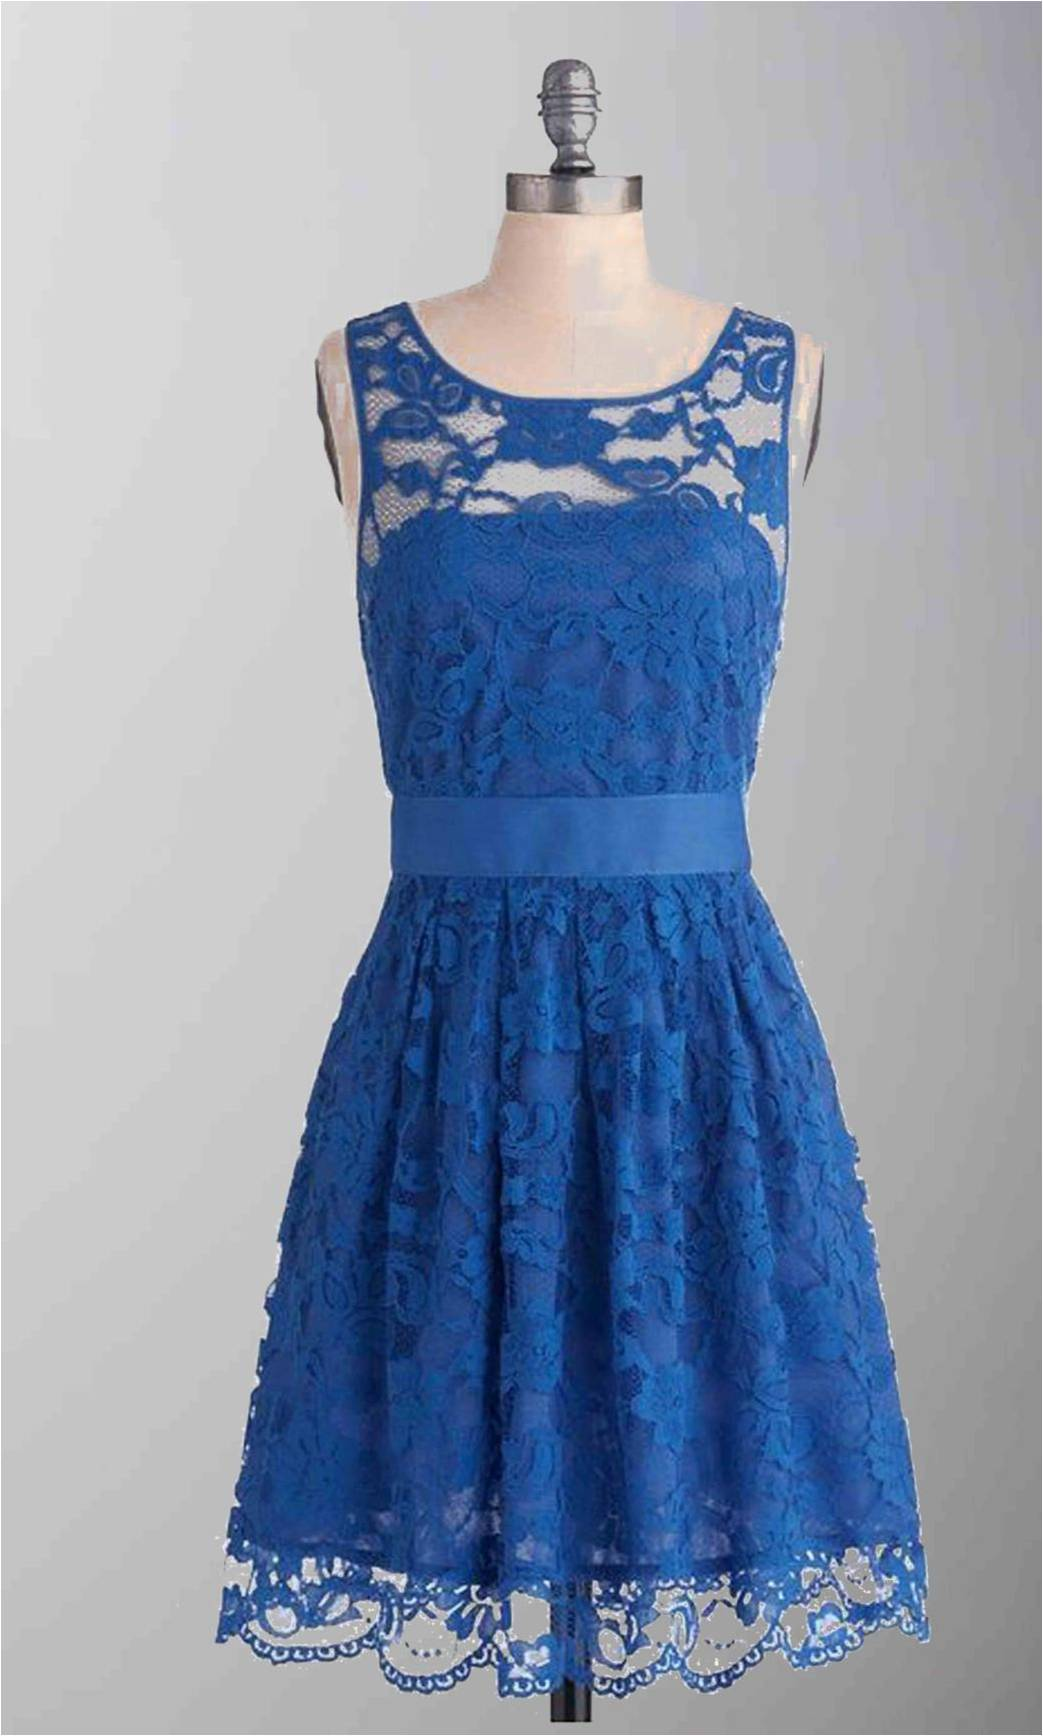 Blue Lace Short Bridesmad Dress with Sash KSP287 [KSP287] - £89.00 : Cheap Prom Dresses Uk, Bridesmaid Dresses, 2014 Prom & Evening Dresses, Look for cheap elegant prom dresses 2014, cocktail gowns, or dresses for special occasions? kissprom.co.uk offers various bridesmaid dresses, evening dress, free shipping to UK etc.